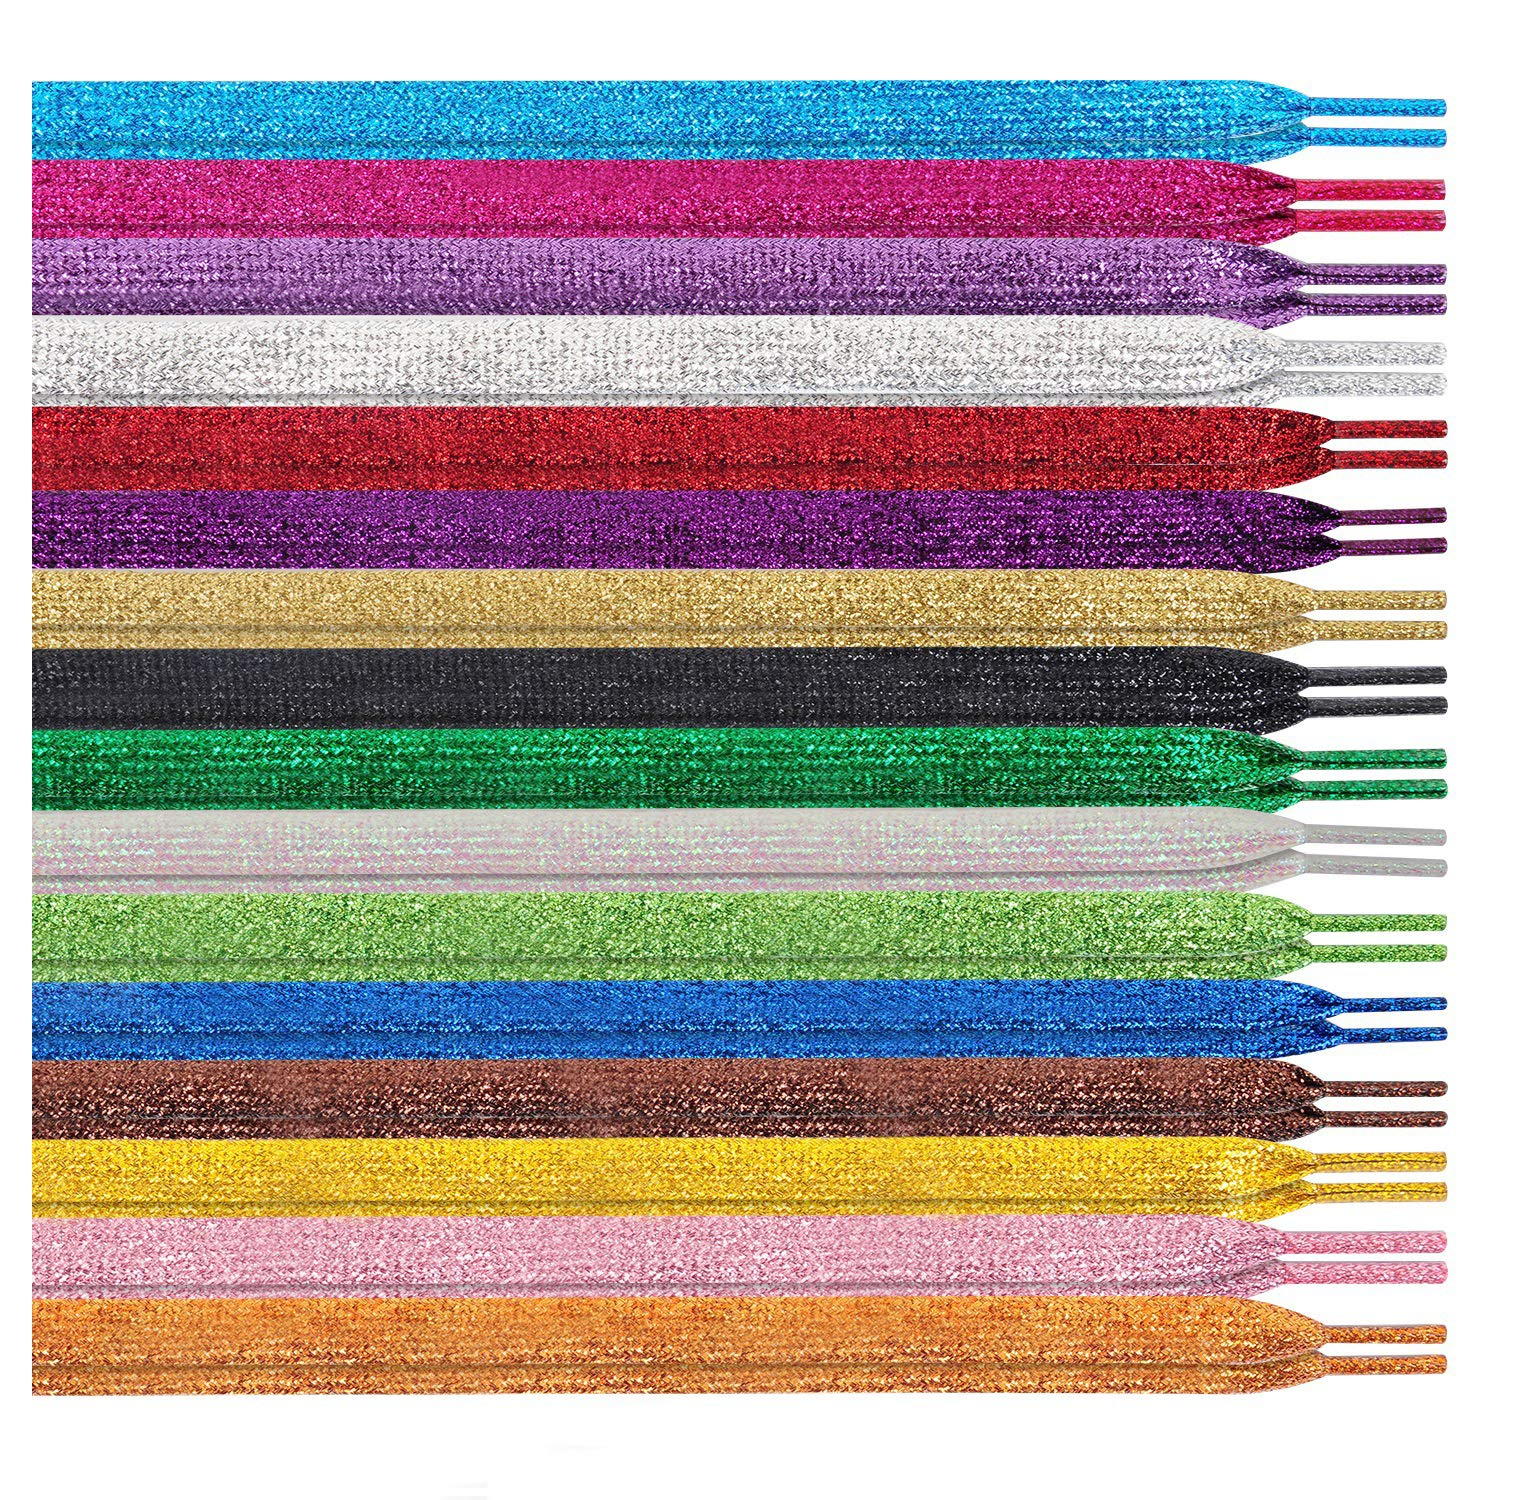 MarJunSep Shimmery glitter 42'' Solid Colors Flat Shoelaces Shoe Laces strings for Teams Cheer Dance Sneakers by MarJunSep